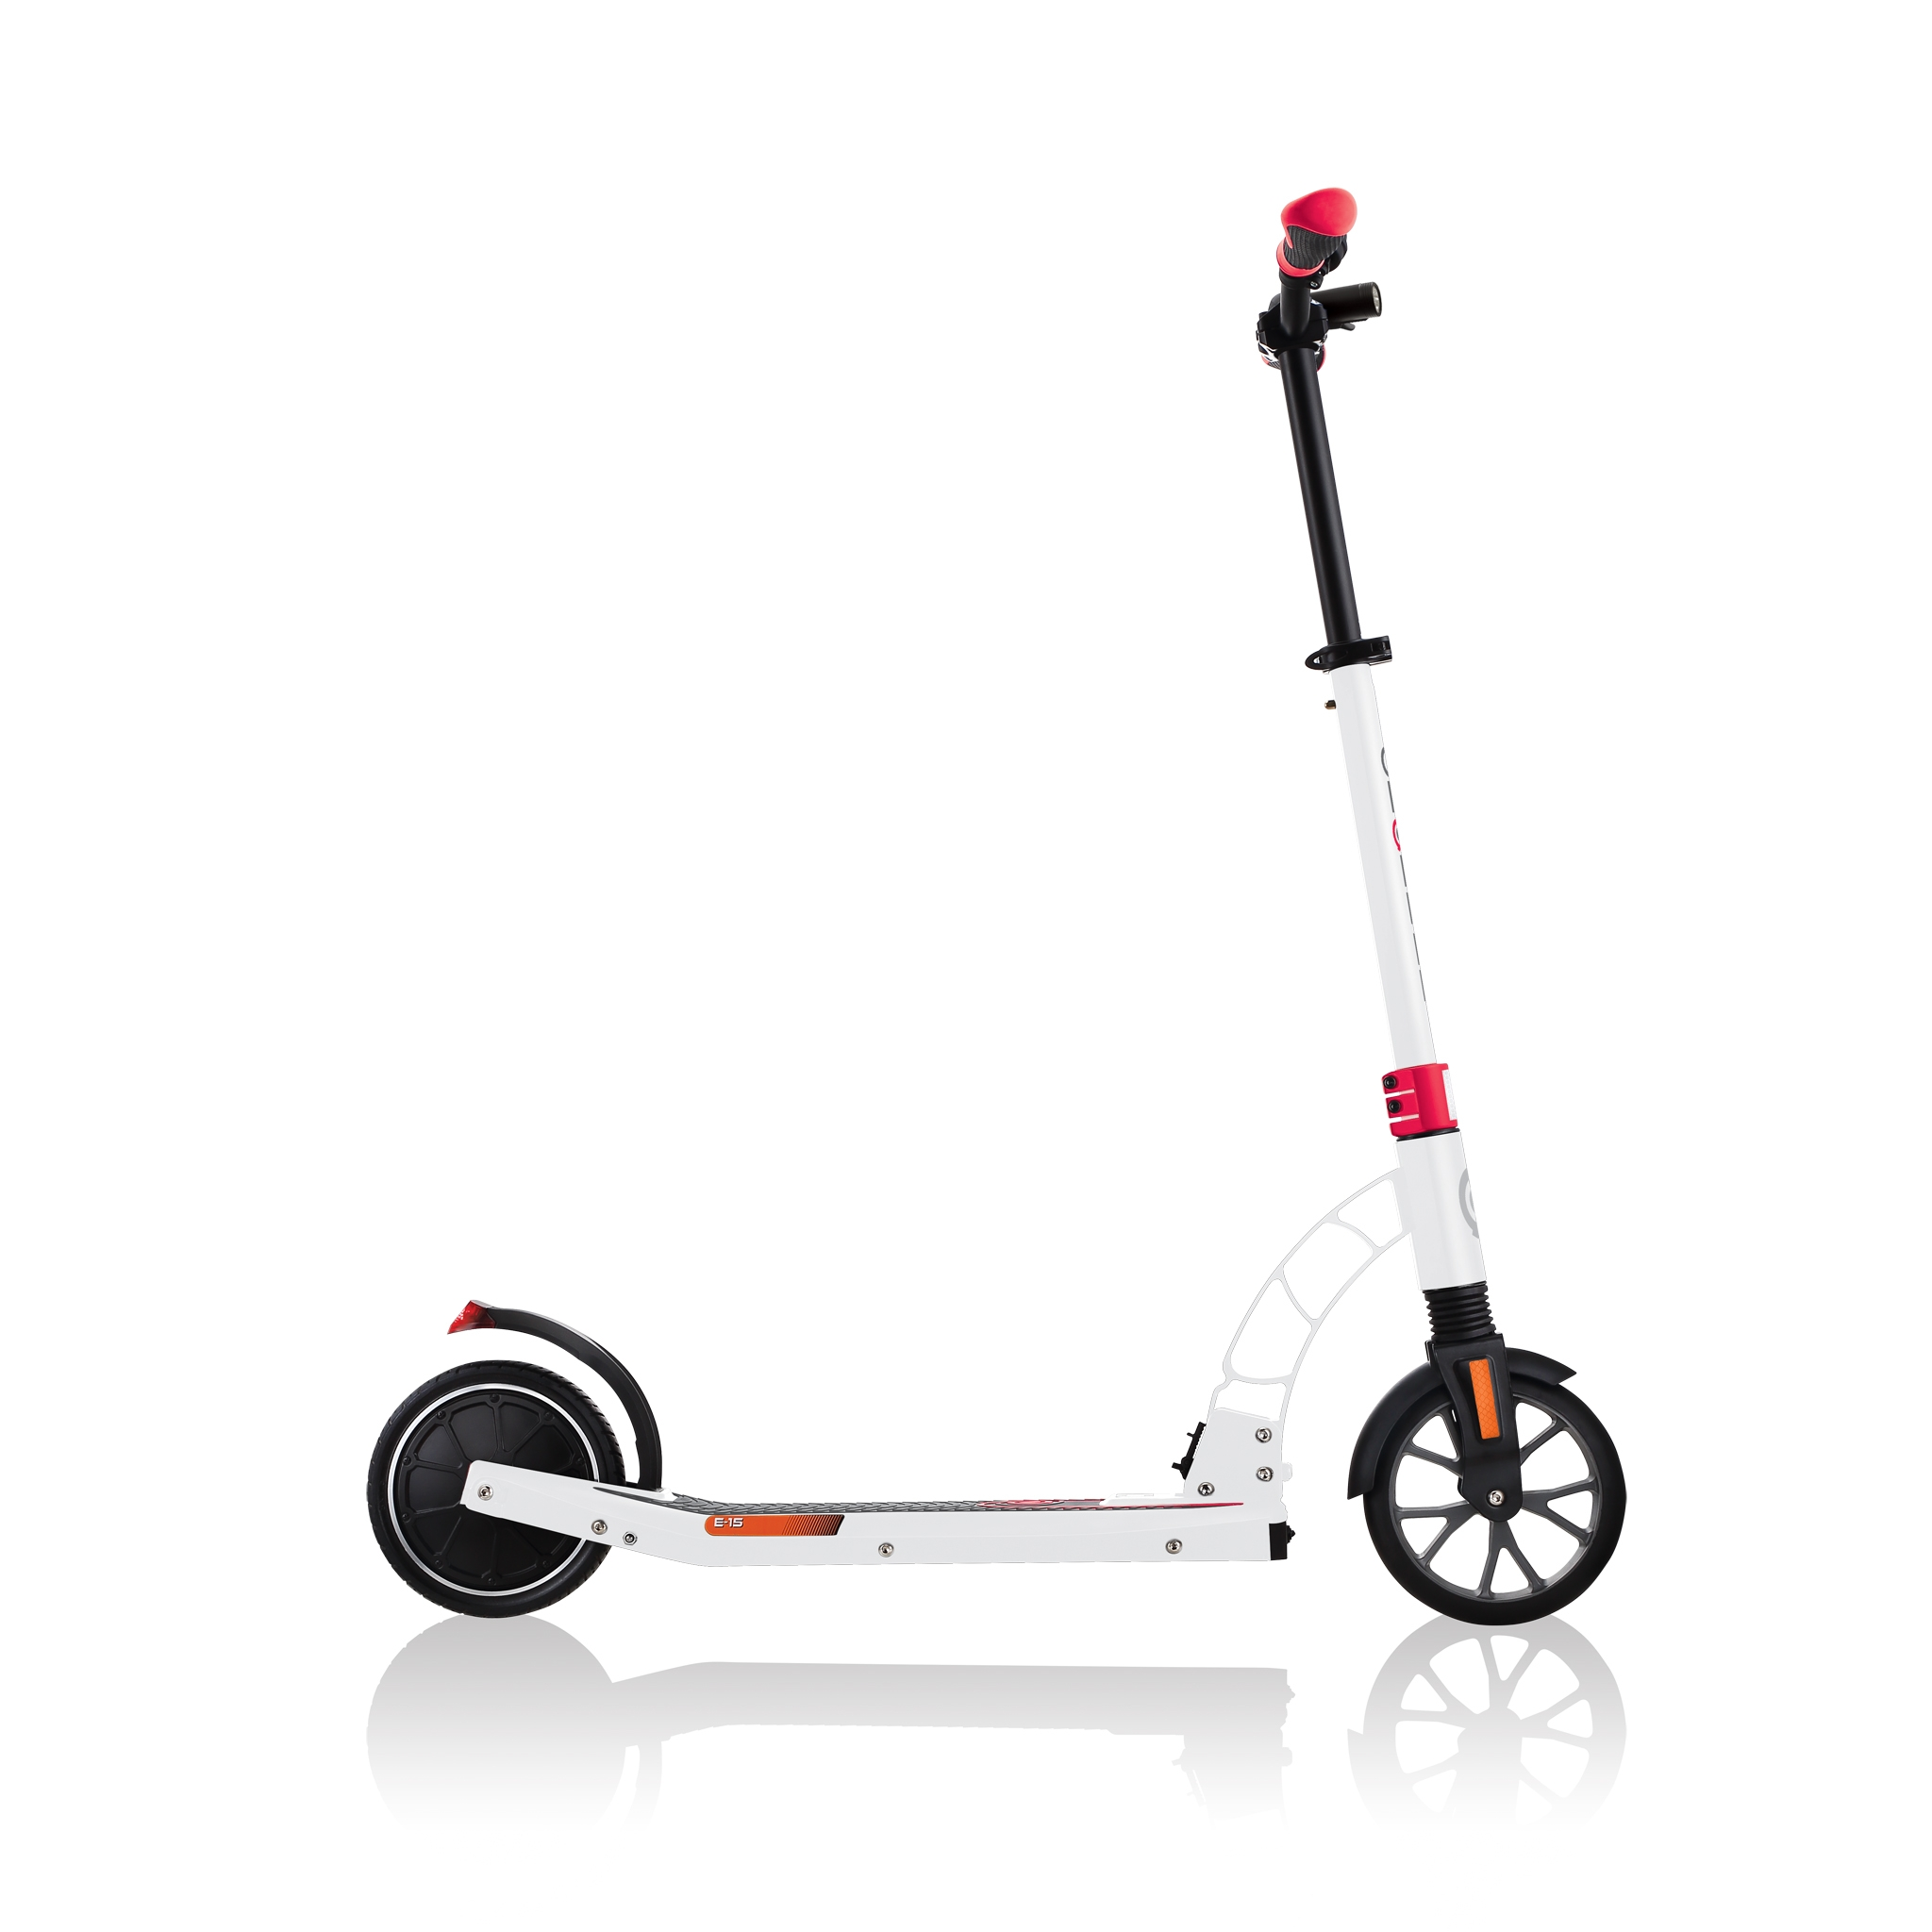 Globber-ONE-K-E-MOTION-15-foldable-electric-scooter-with-203mm-puncture-free-rubber-tyres 5